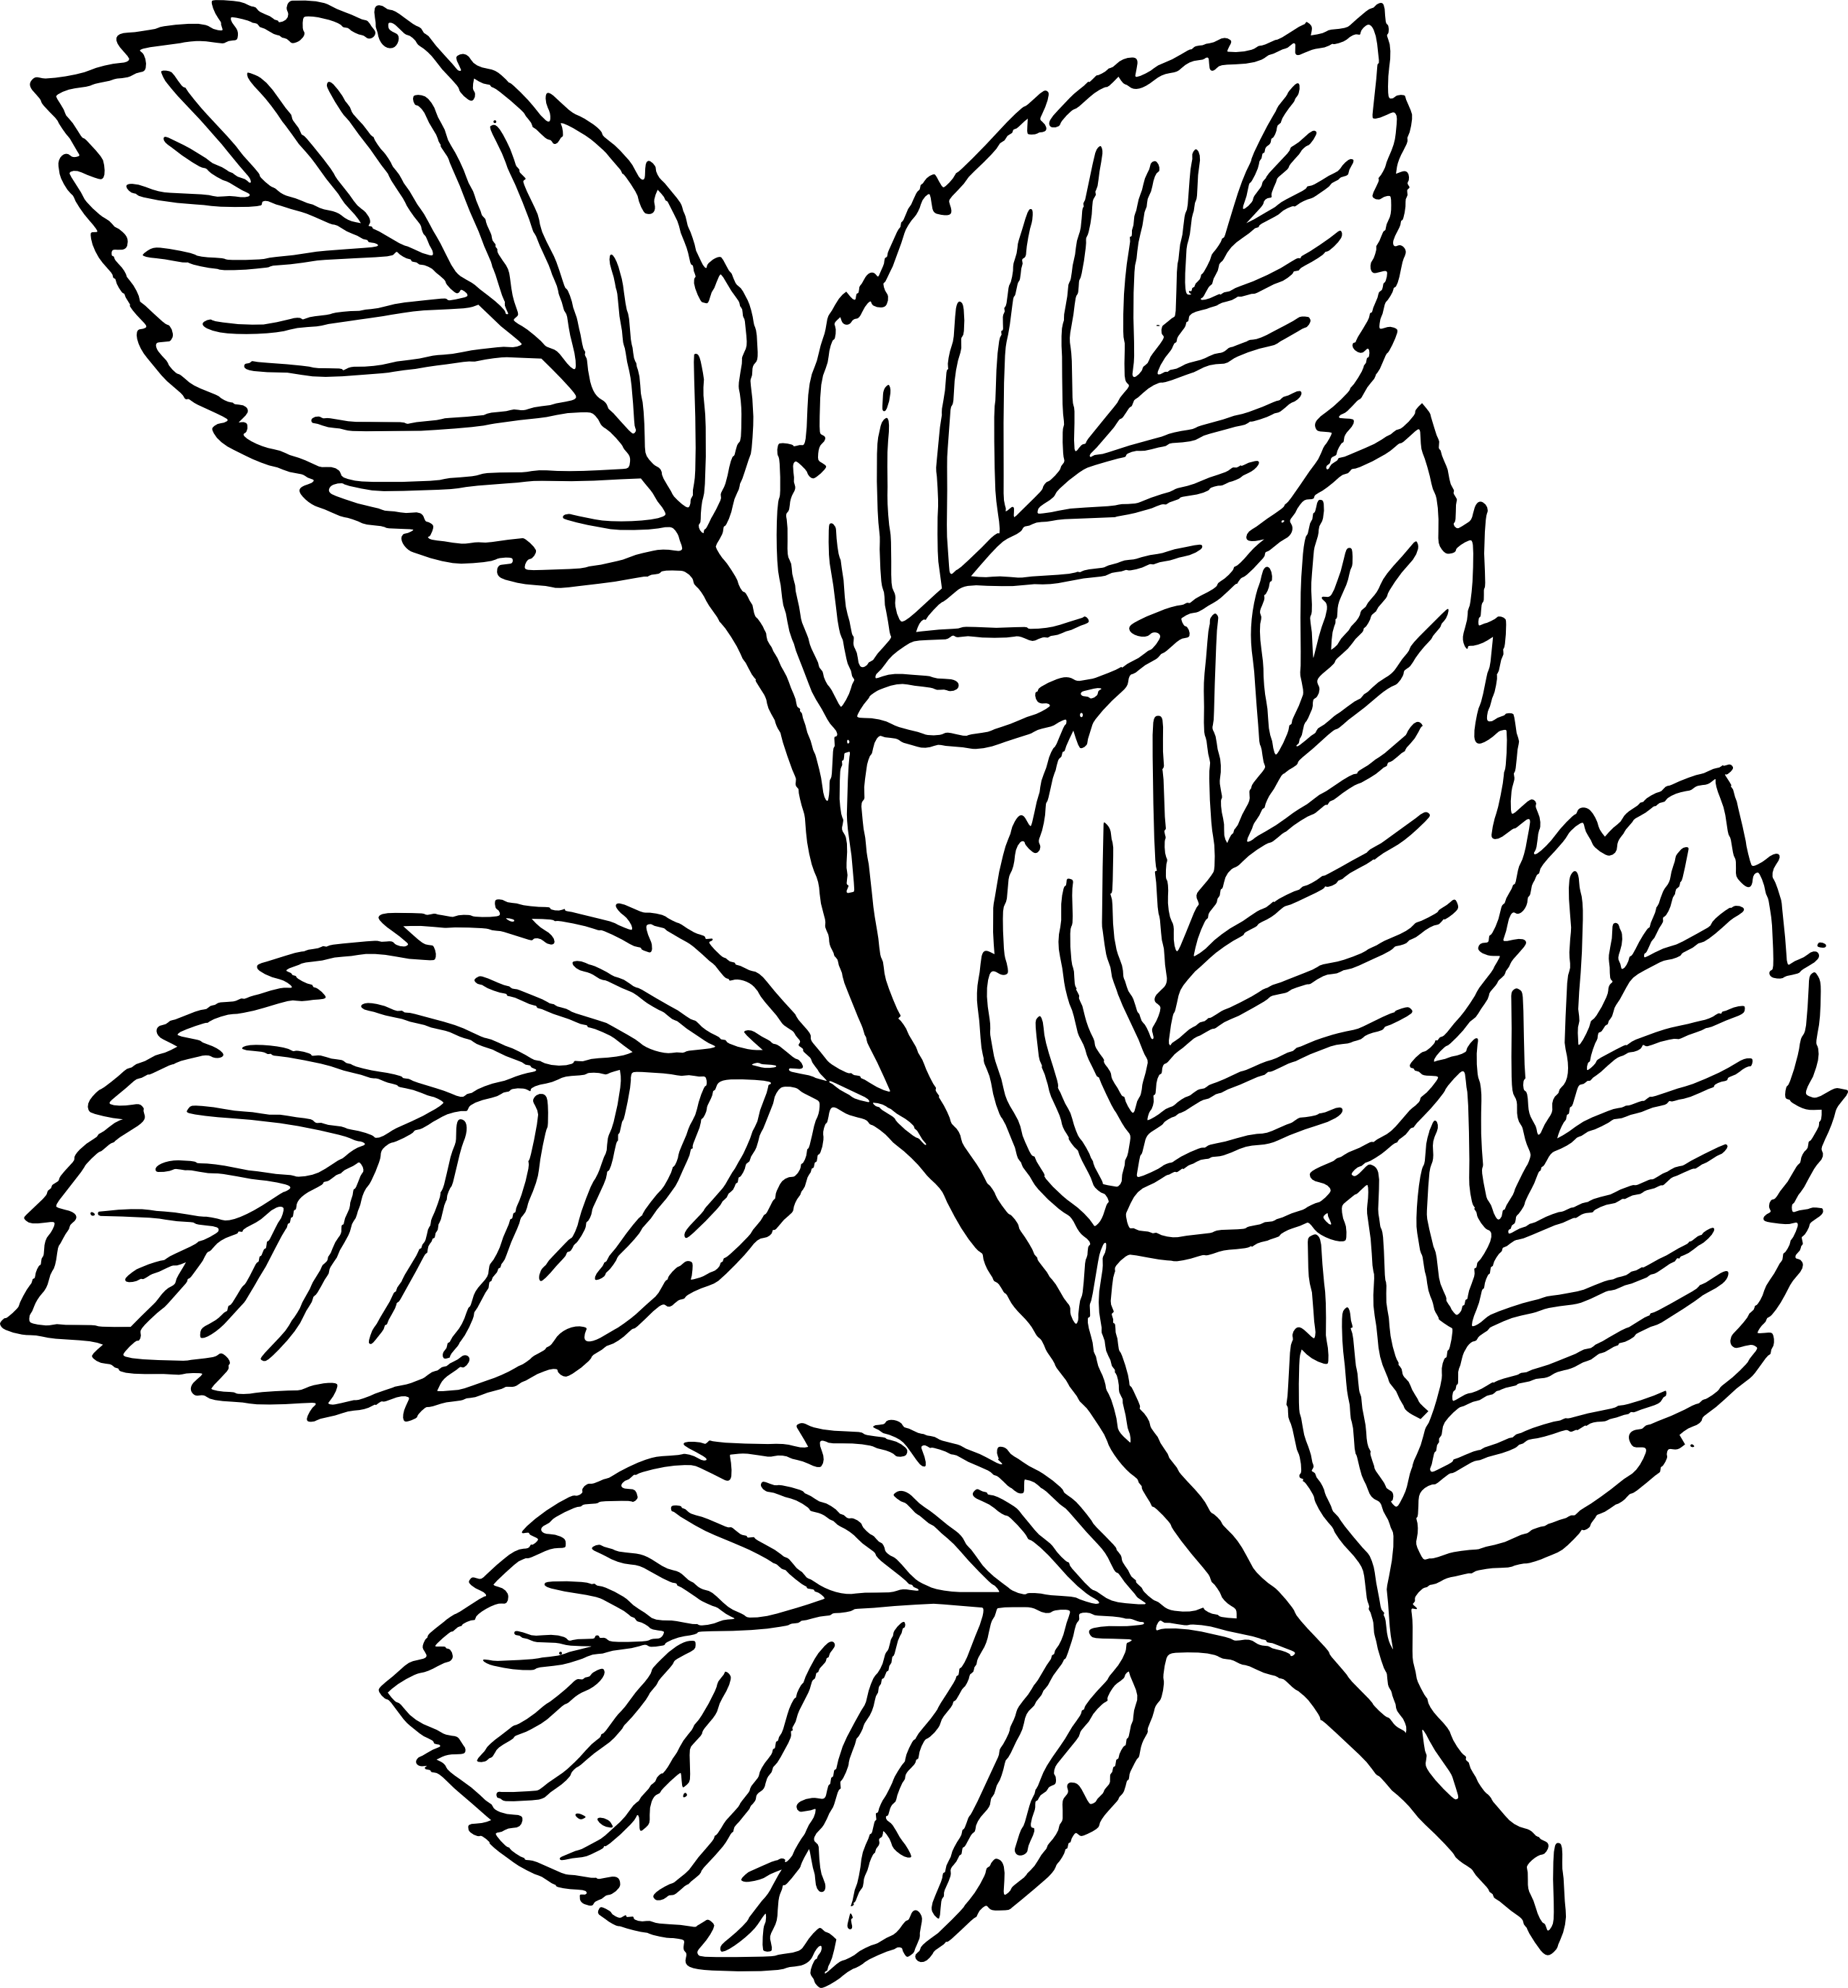 Fall Leaf Clipart Black And White | Clipart Panda - Free ...